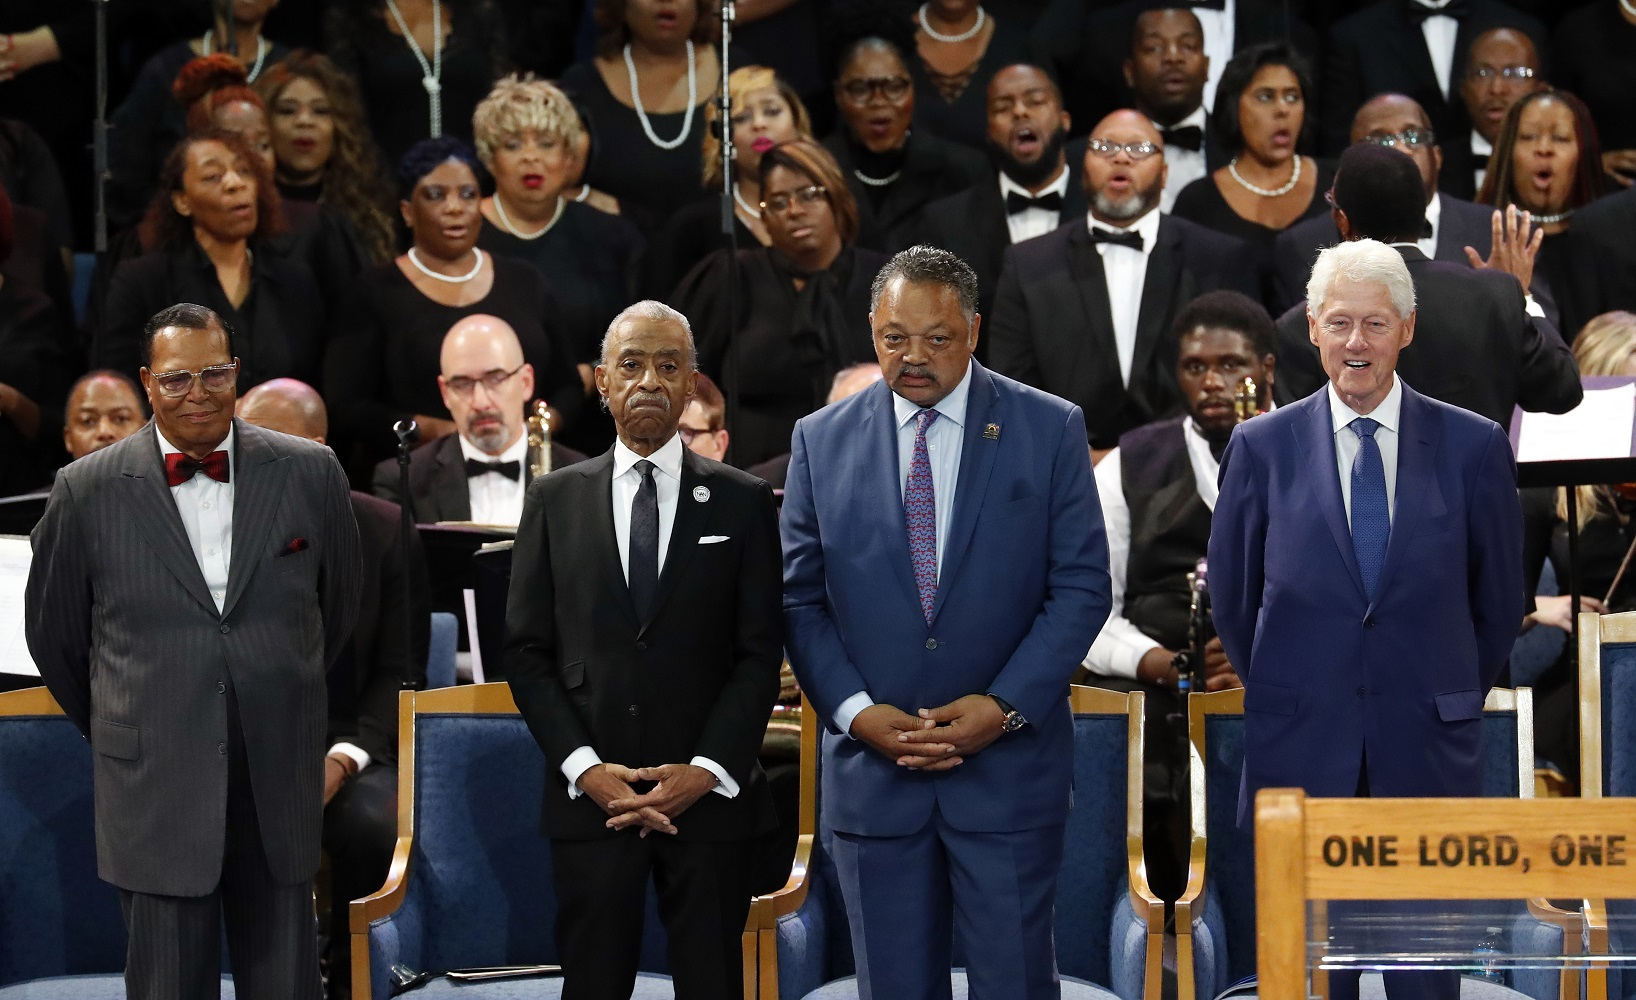 What about Farrakhan?